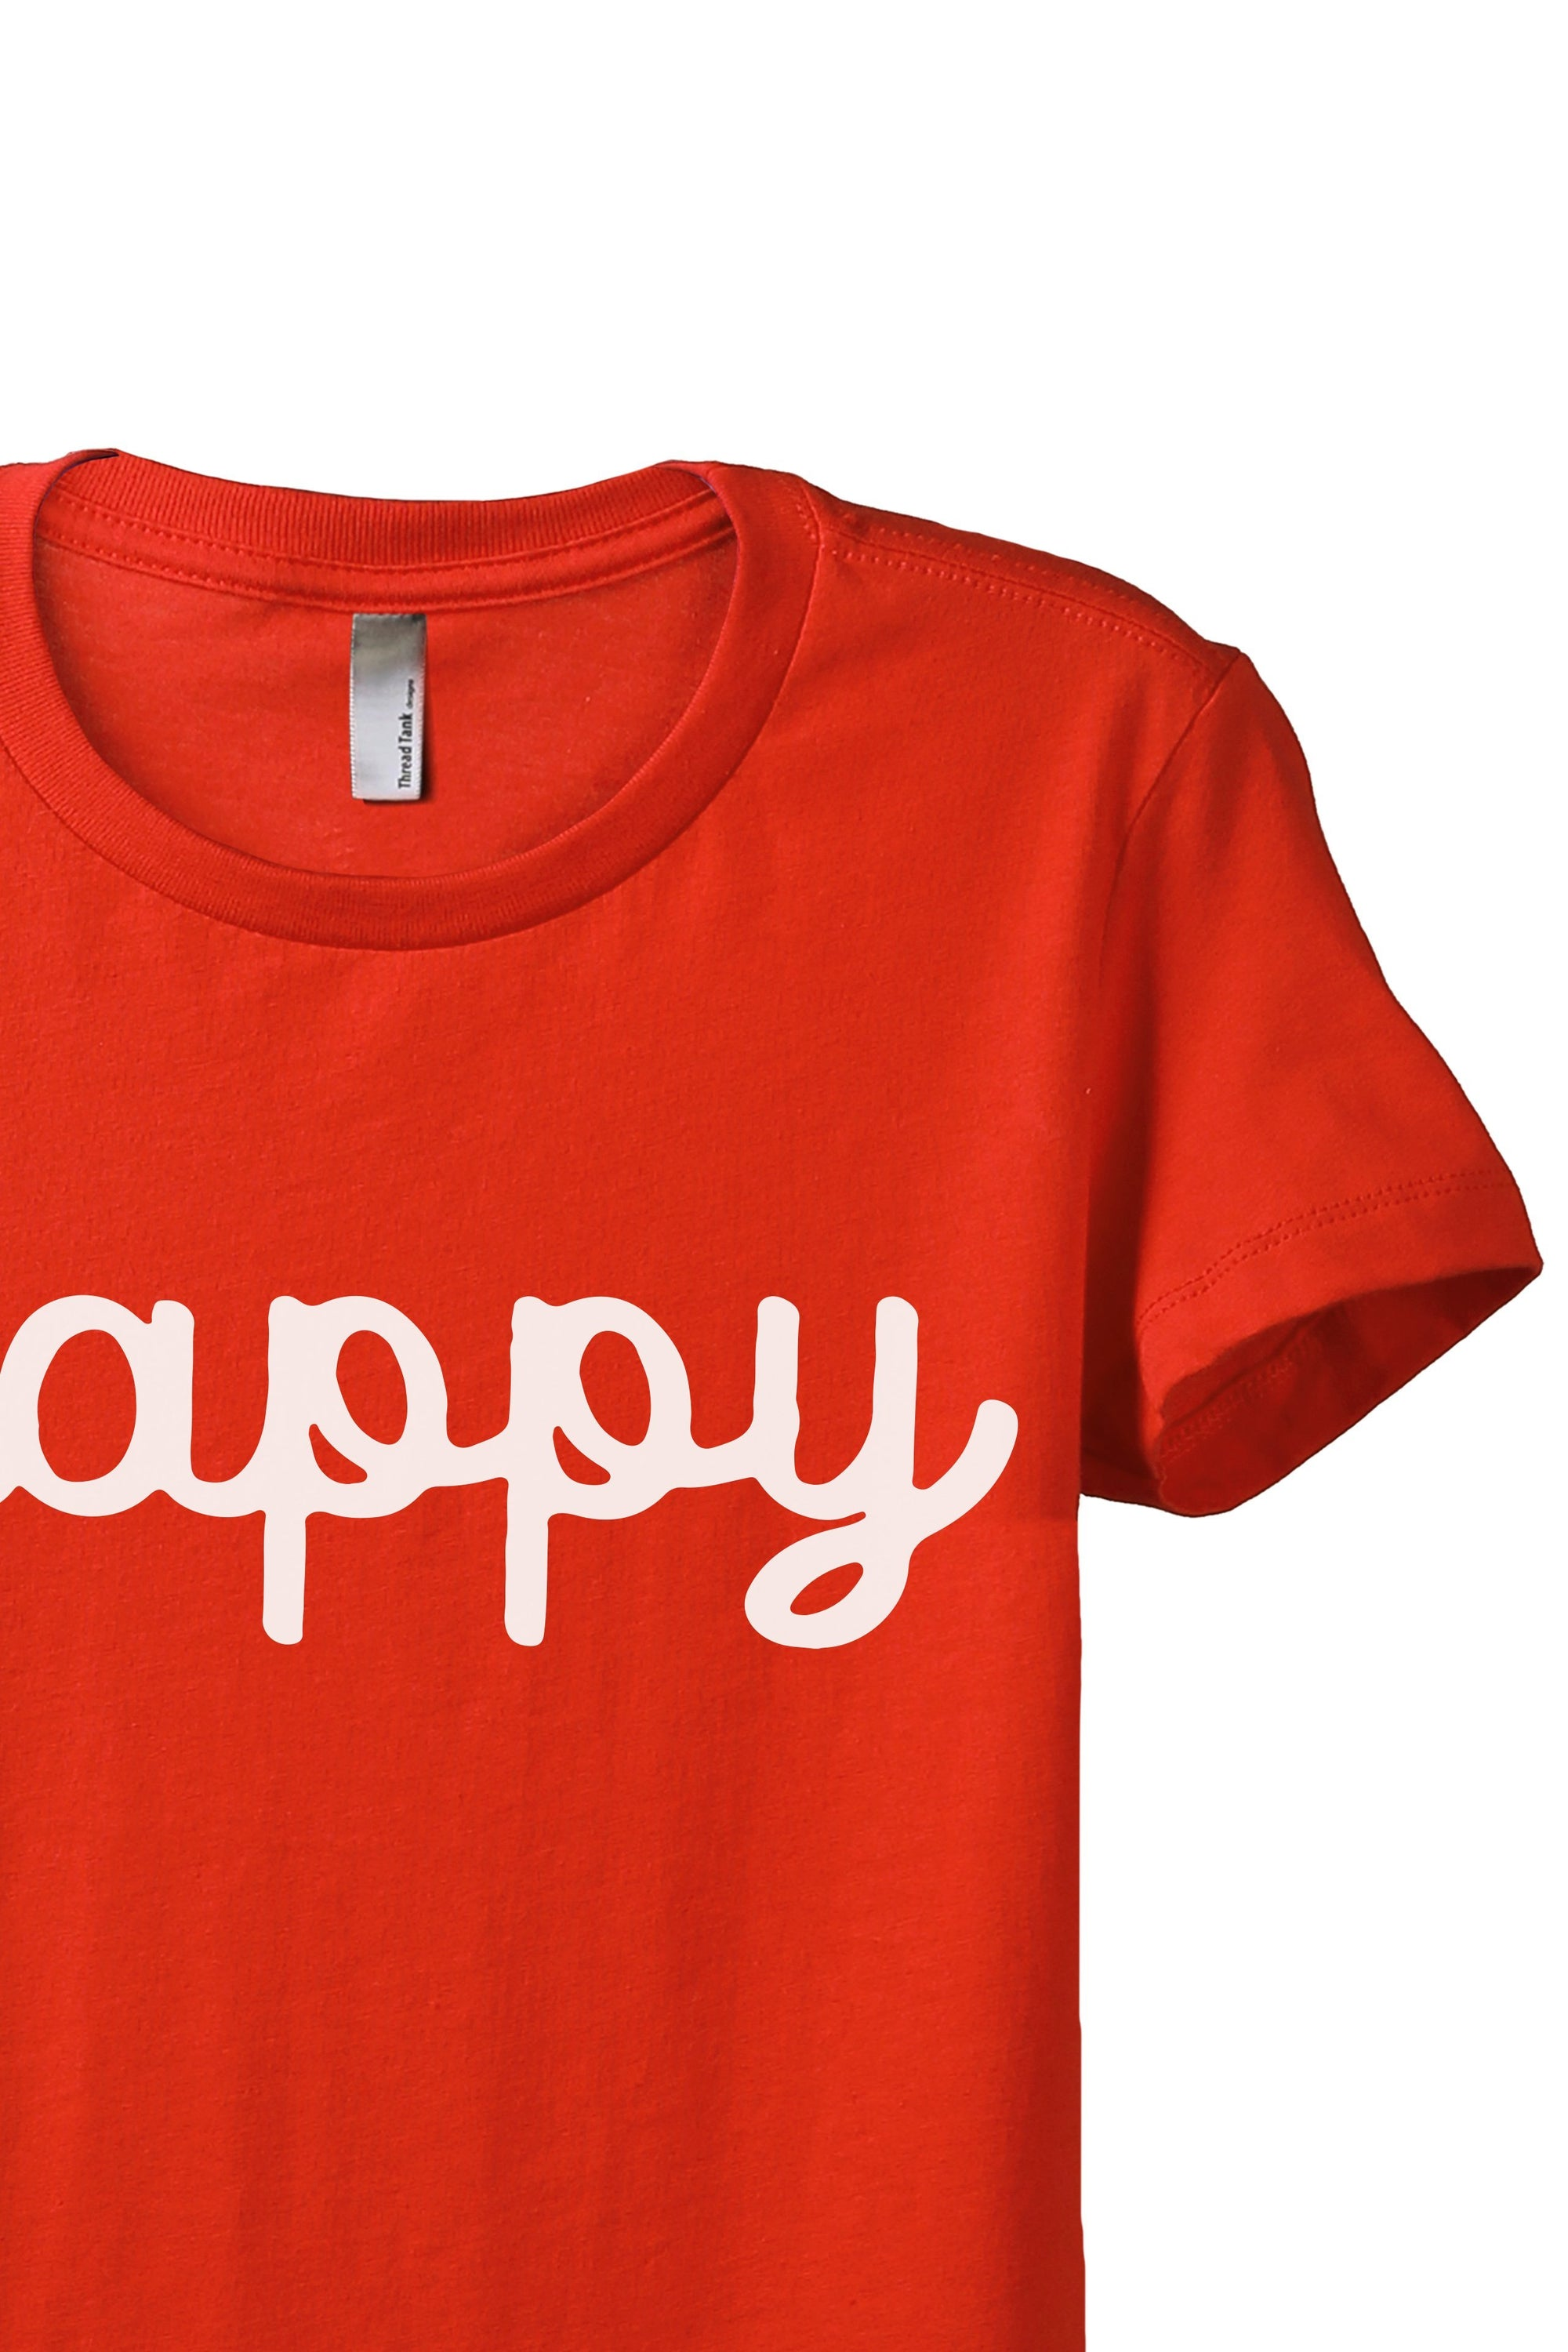 Happy Cursive Women's Relaxed Crewneck T-Shirt Top Tee Poppy